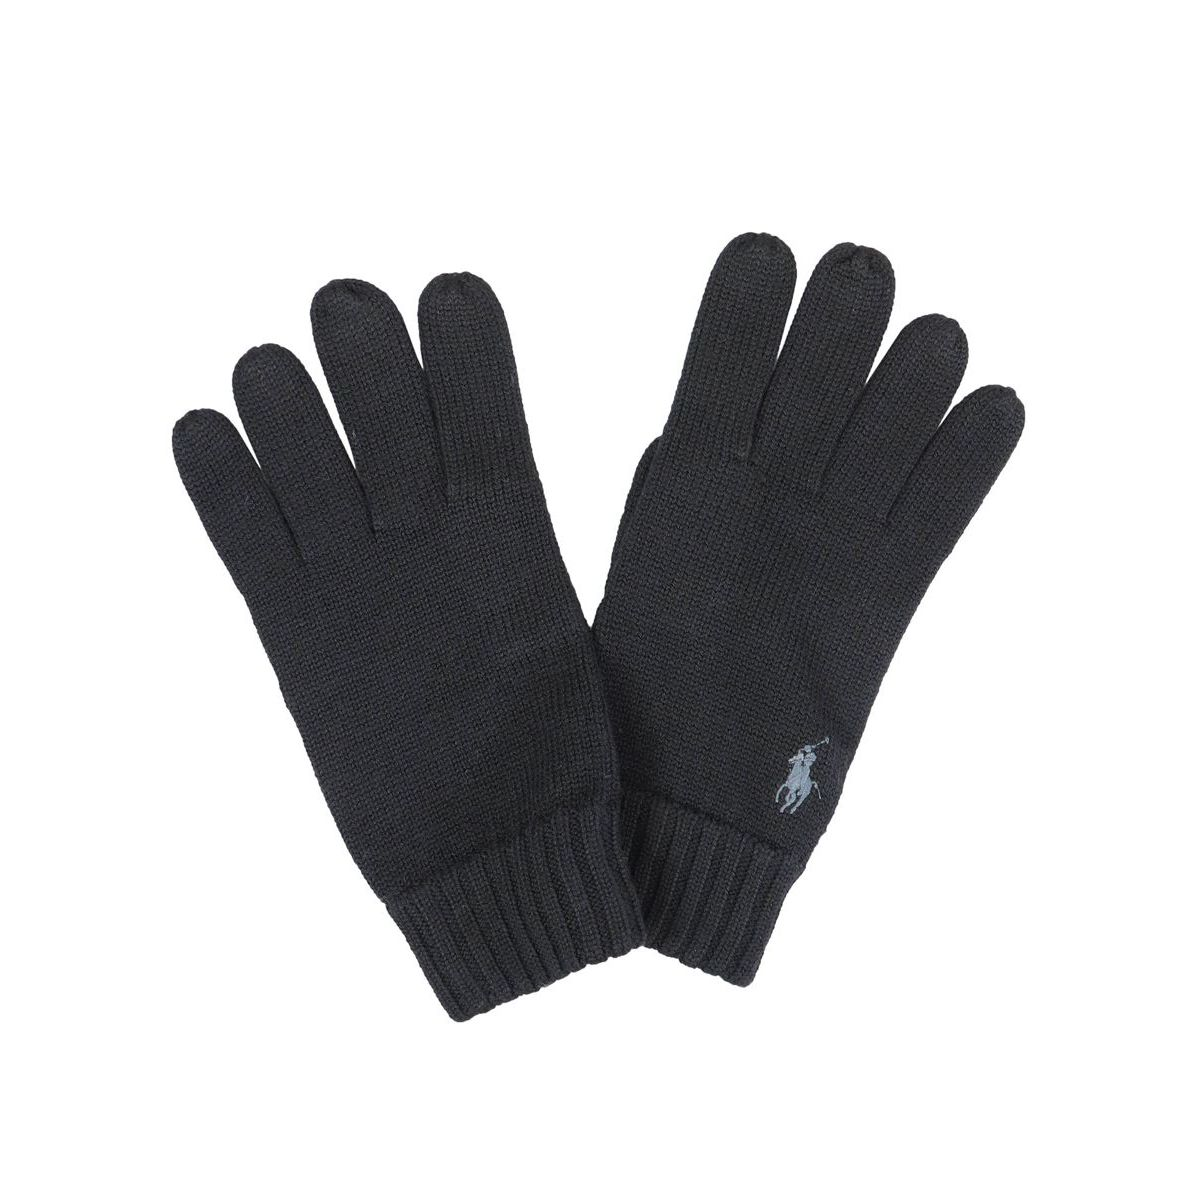 Wool gloves with logo embroidery Black Polo Ralph Lauren